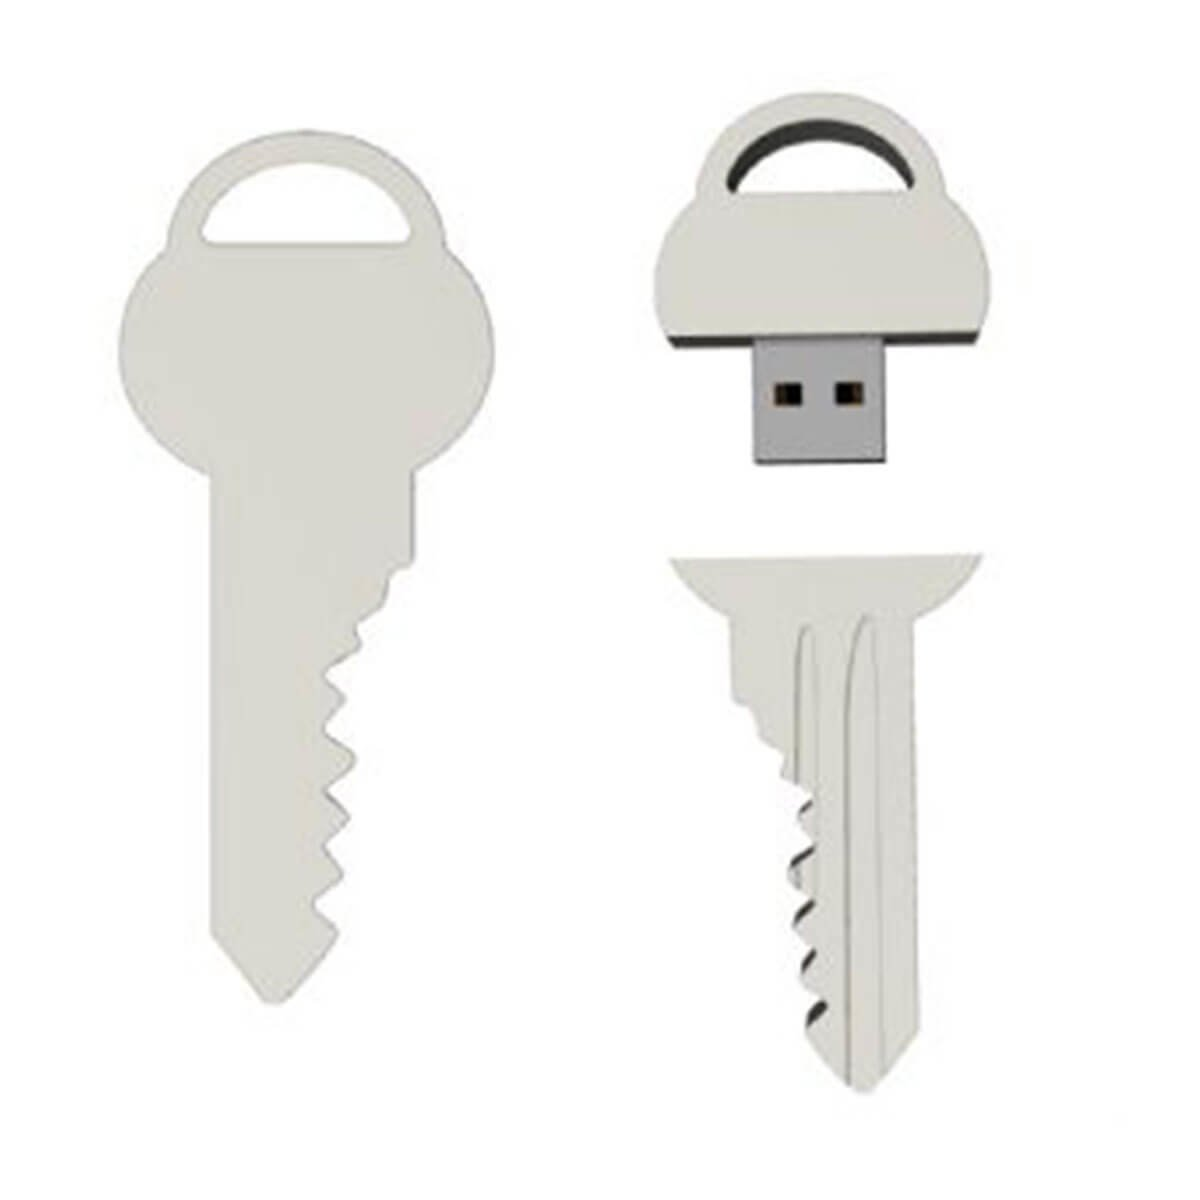 Key USB Flash Drive-You can change up to 2 of the base PVC colours and print your logo in 1-2 colours in 1 position.